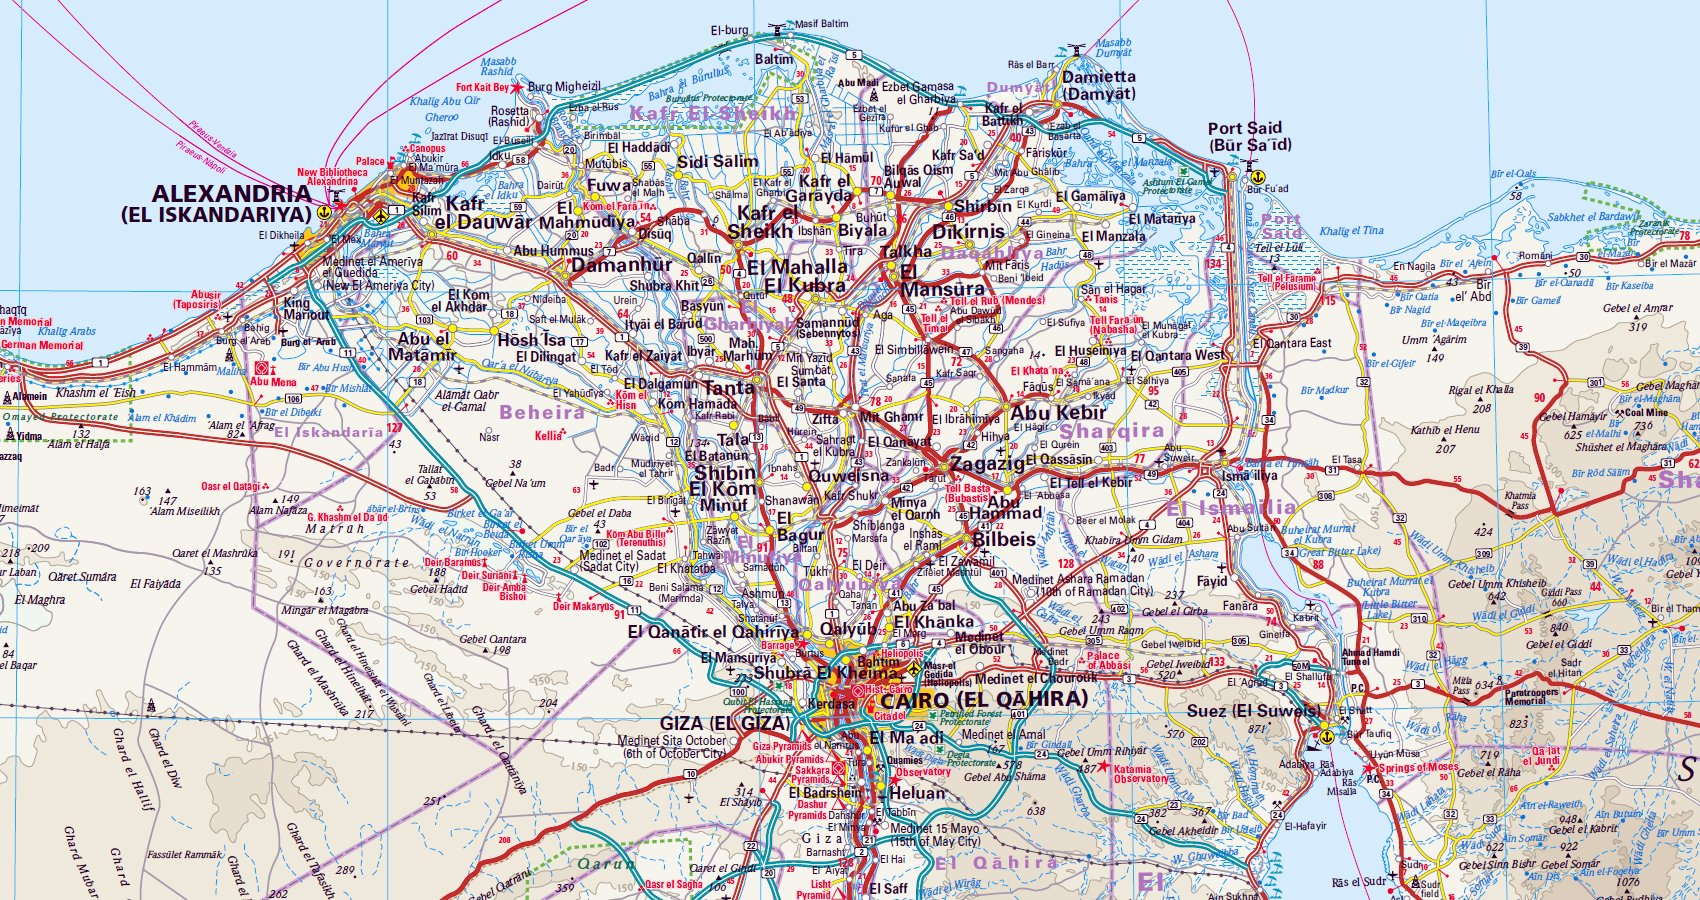 Peru Karte Mit Höhenangaben.Reise Know How Landkarte ägypten 1 1 125 000 World Mapping Project